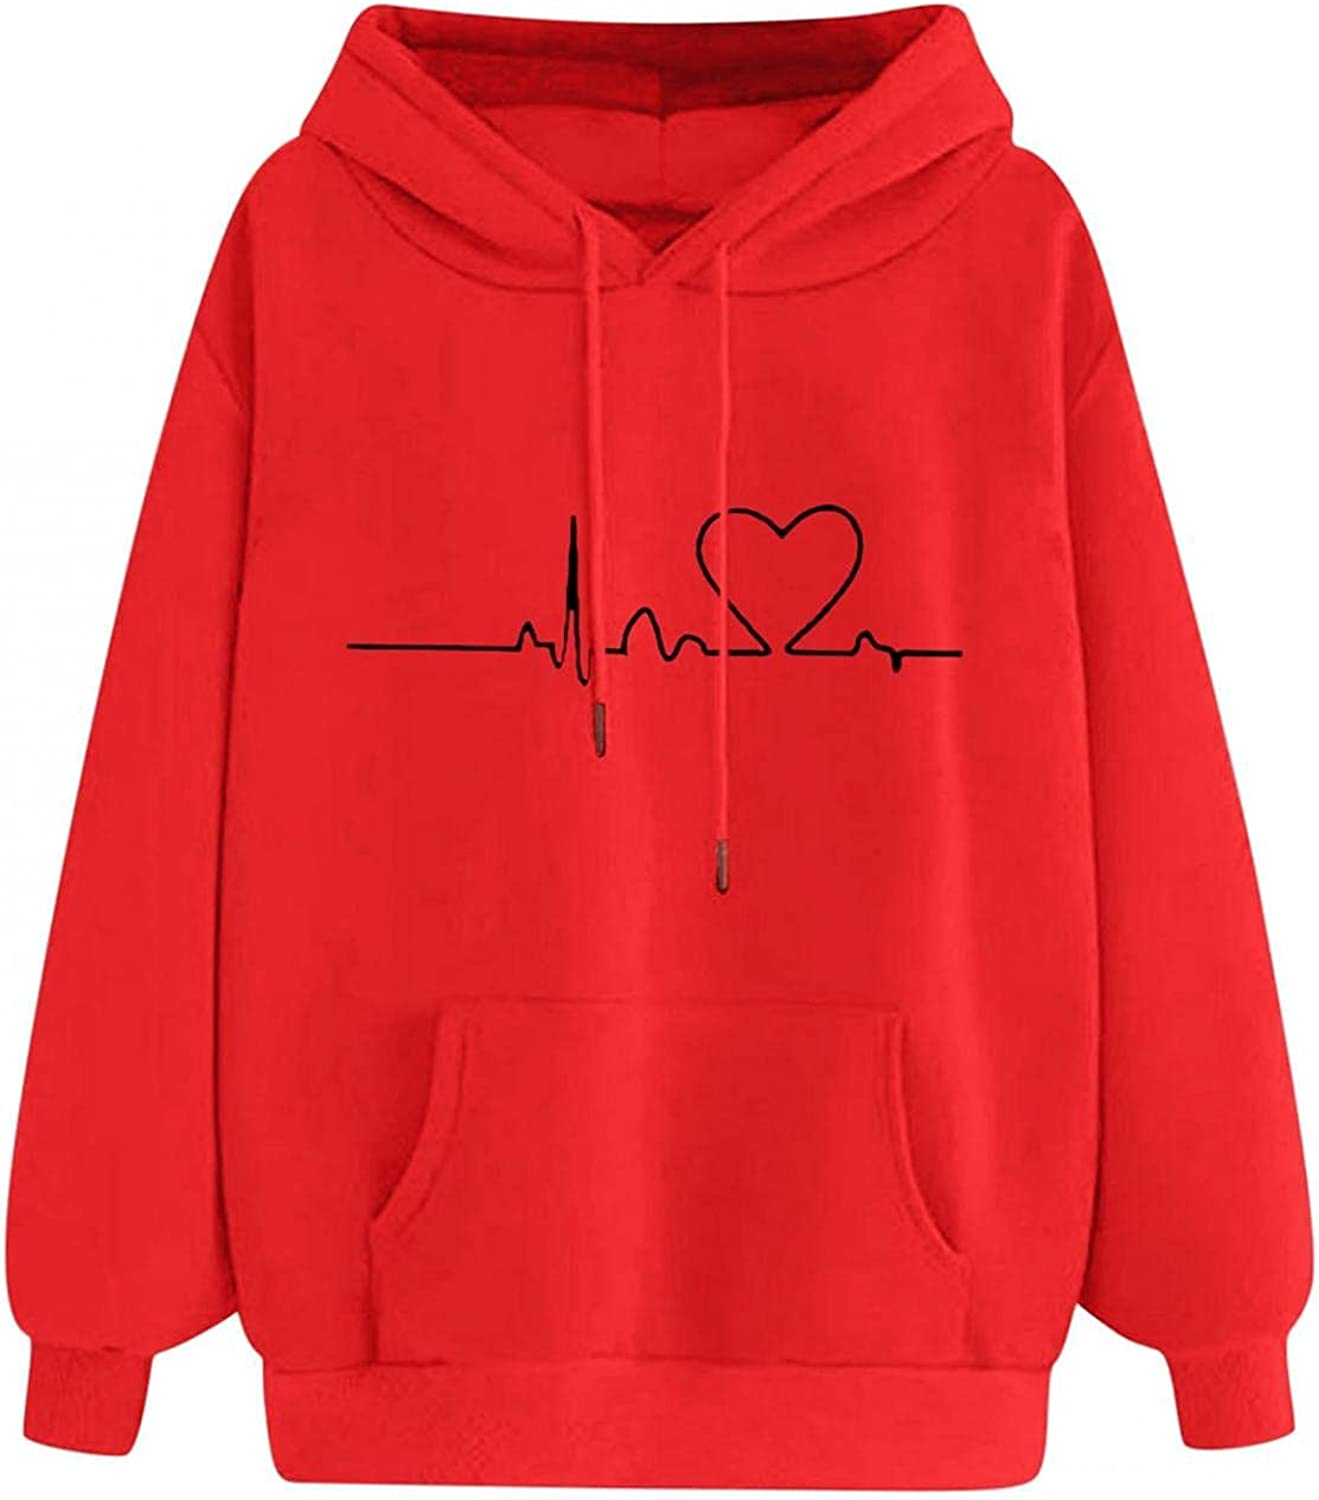 Women's Casual Loose Print Hoodie Sweatshirt Pullover Blouses Fashion Love Pattern Long Sleeve Soft Comfortable Tops